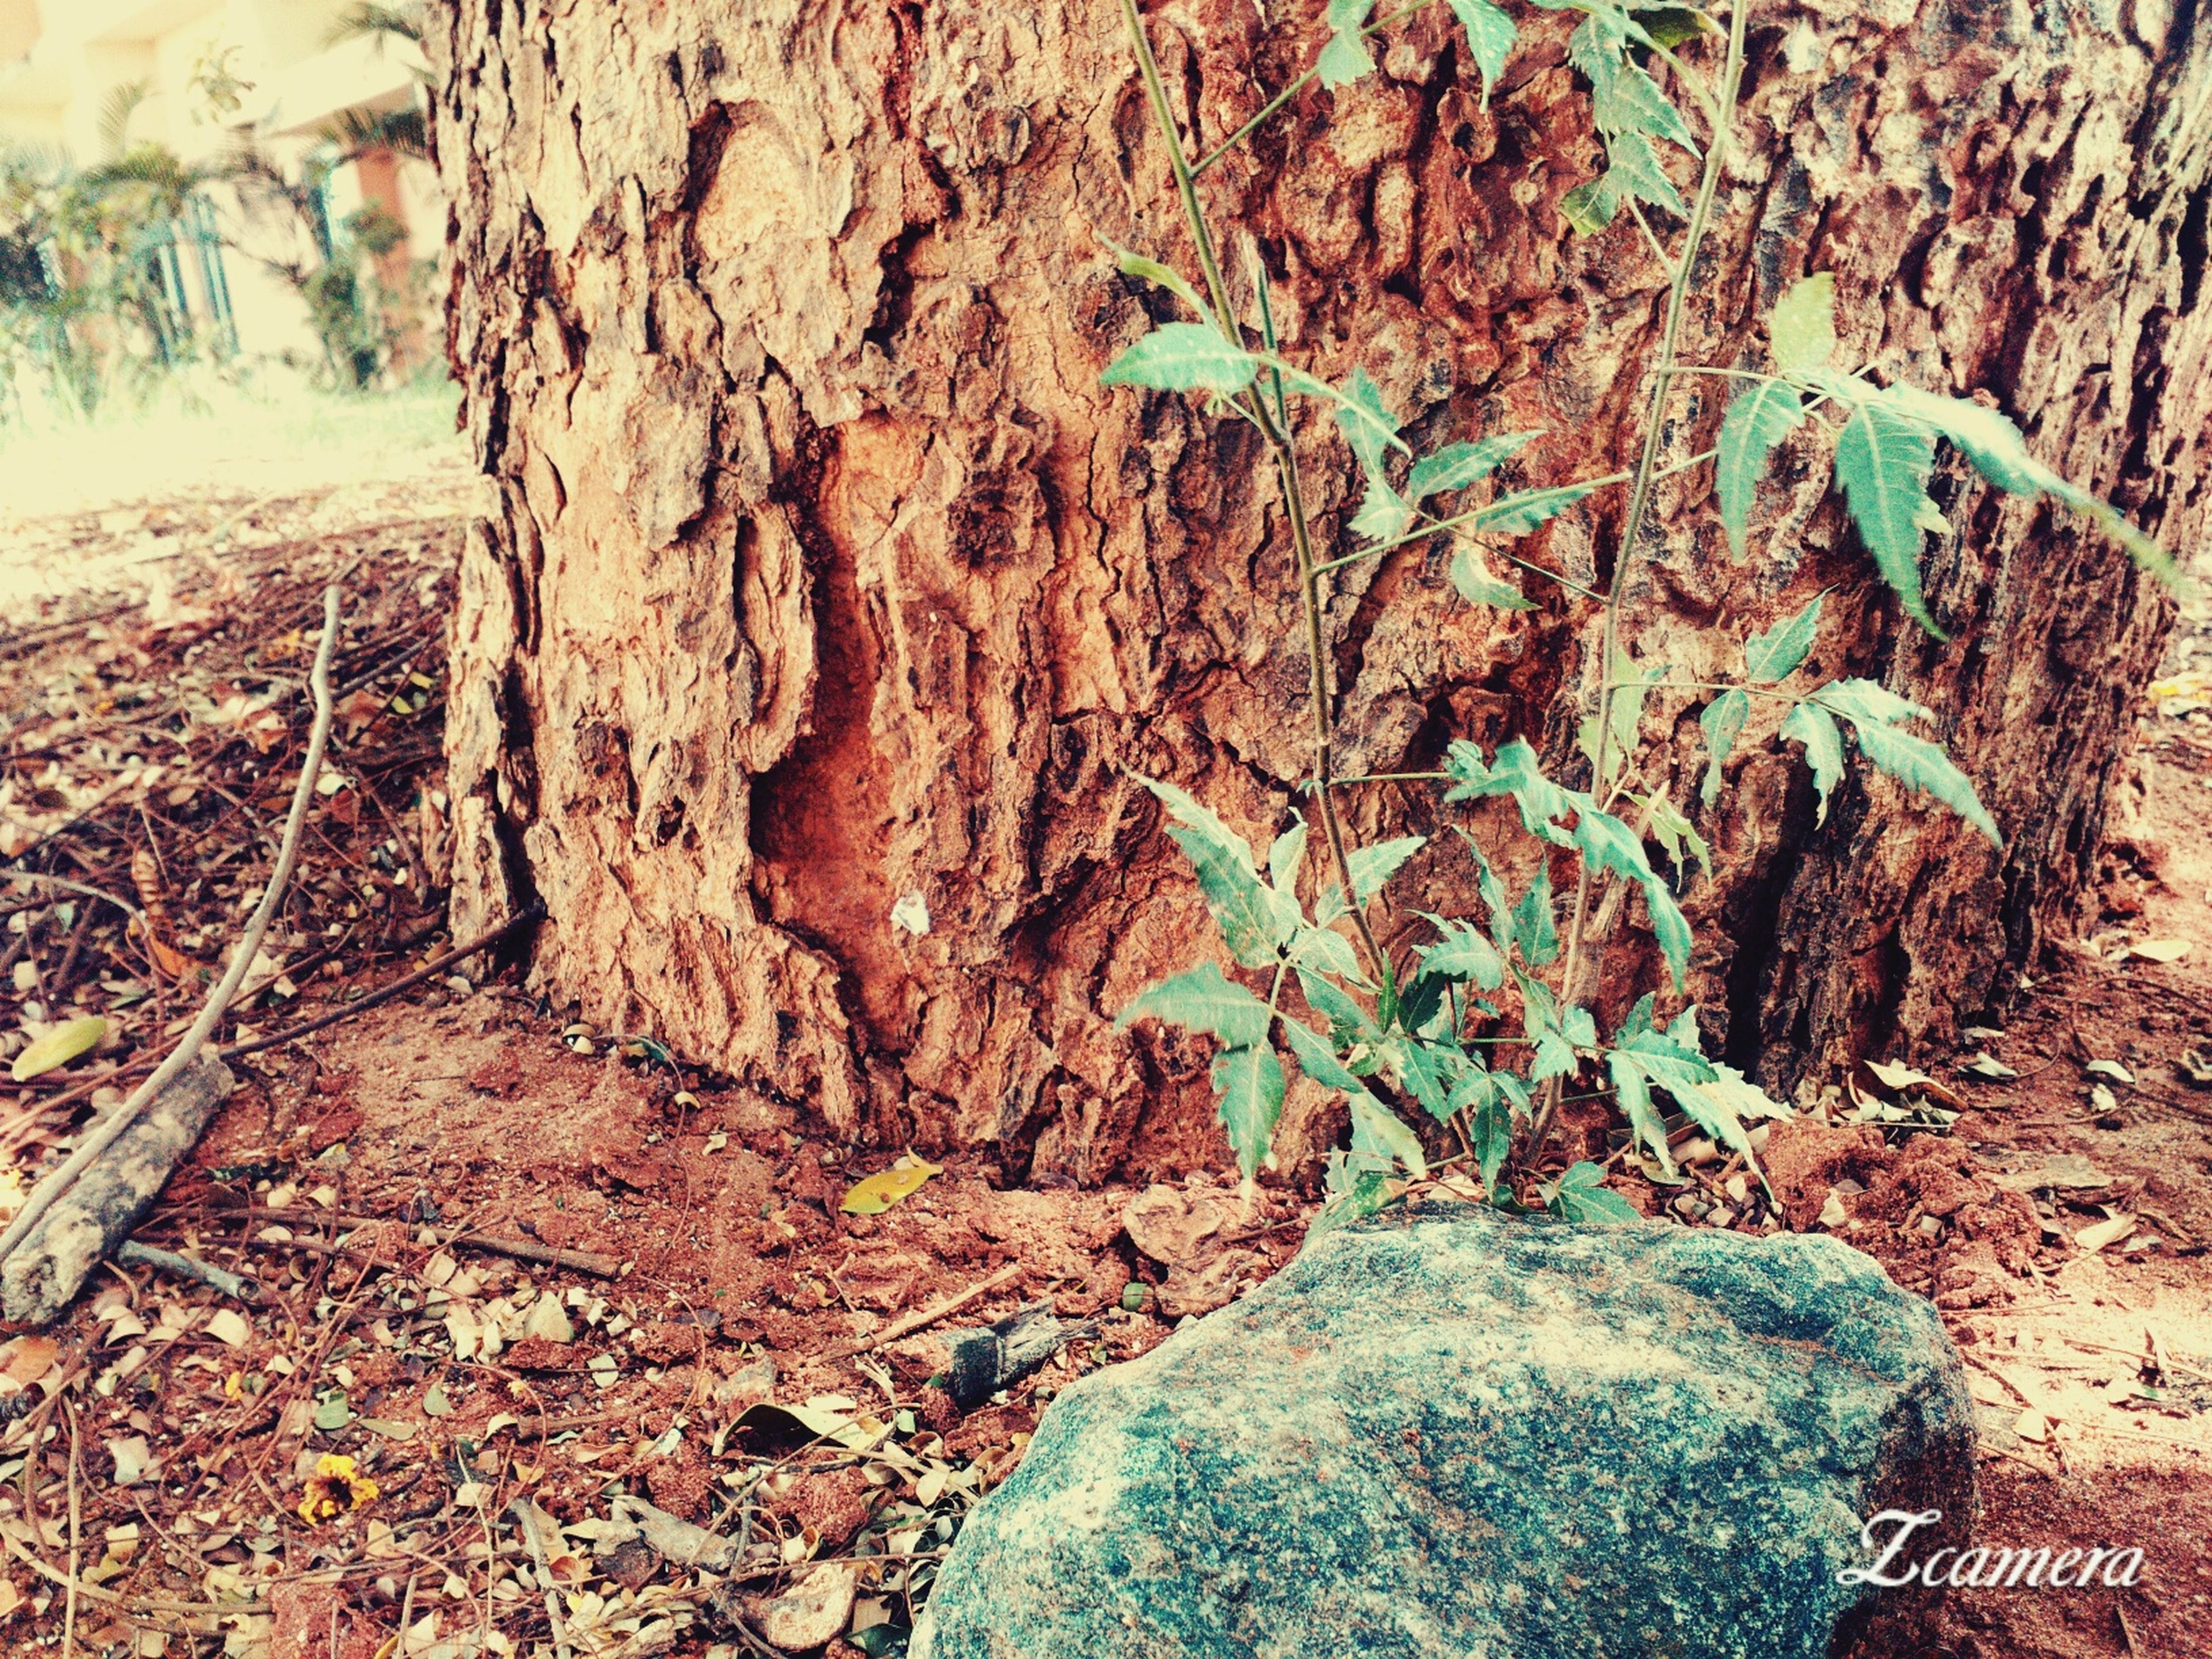 tree trunk, tree, moss, nature, textured, growth, rock - object, forest, close-up, plant, day, tranquility, rough, outdoors, sunlight, no people, beauty in nature, bark, rock, high angle view